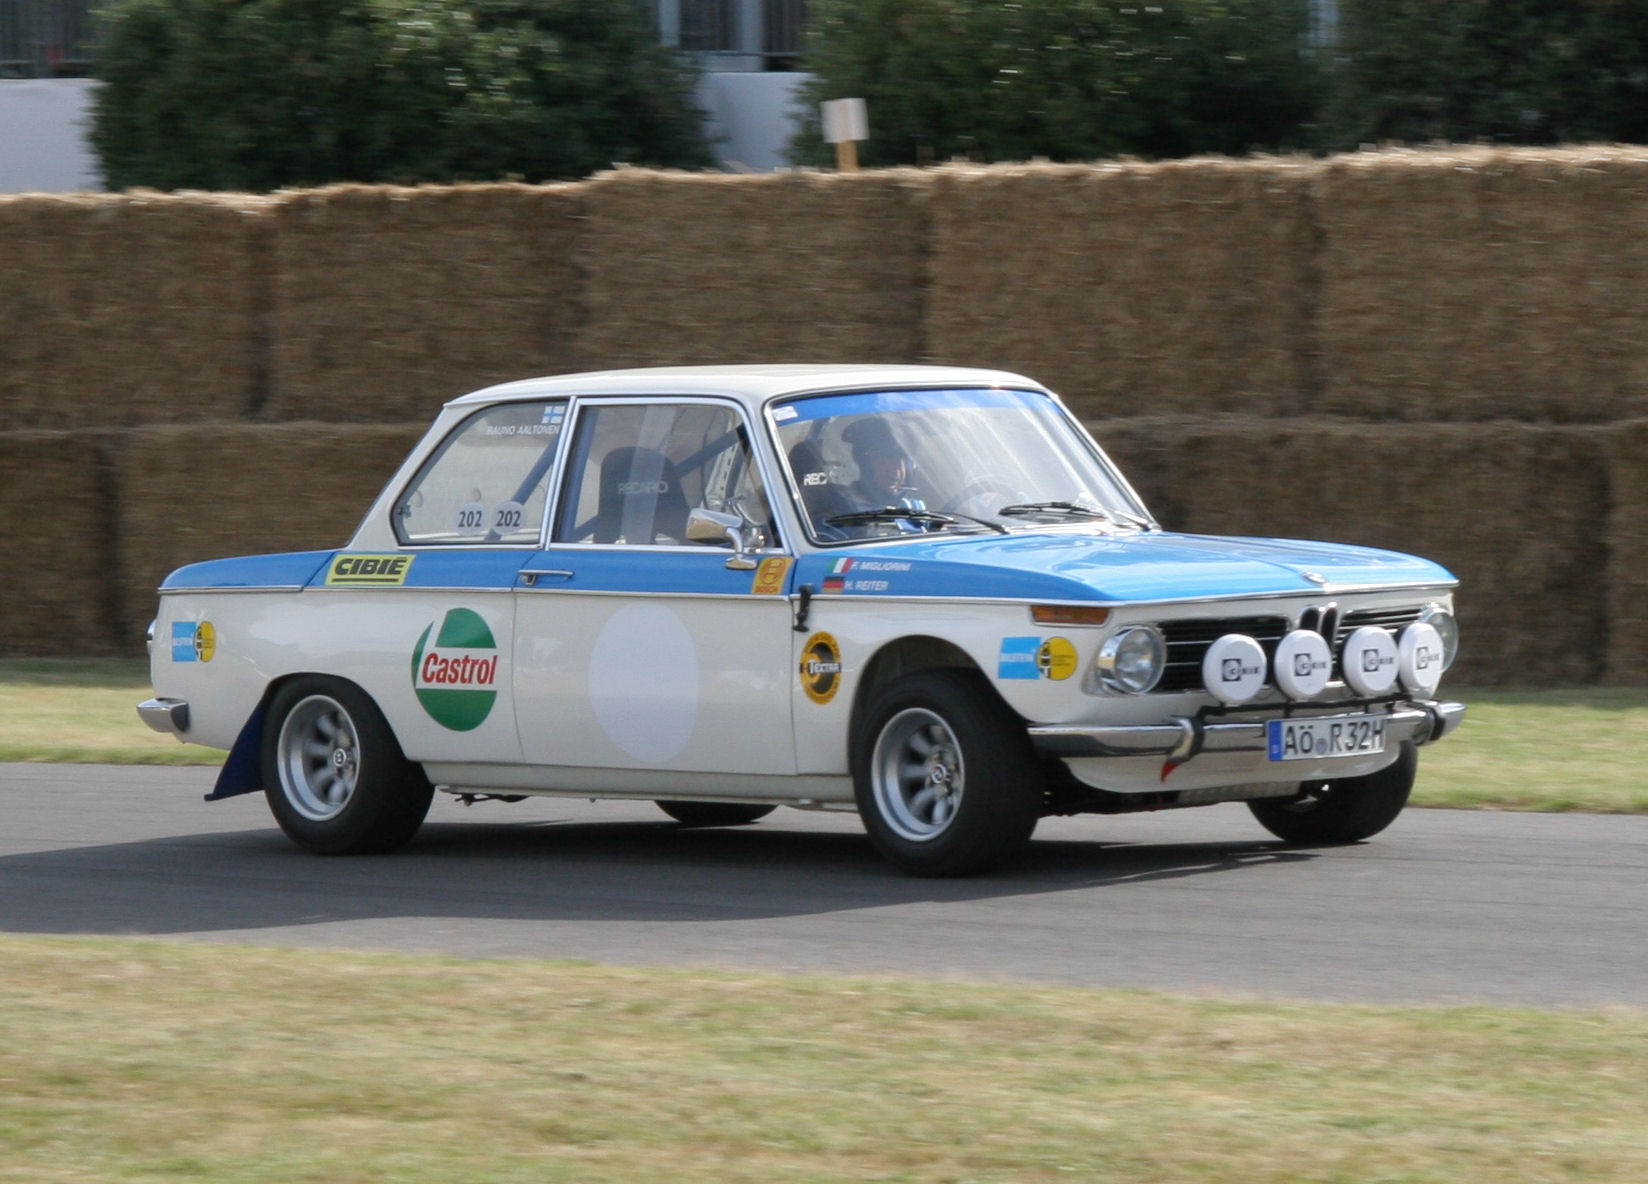 Bmw 2002 Tii Race Car >> Bmw 2002 Ti Group 2 1969 Racing Cars